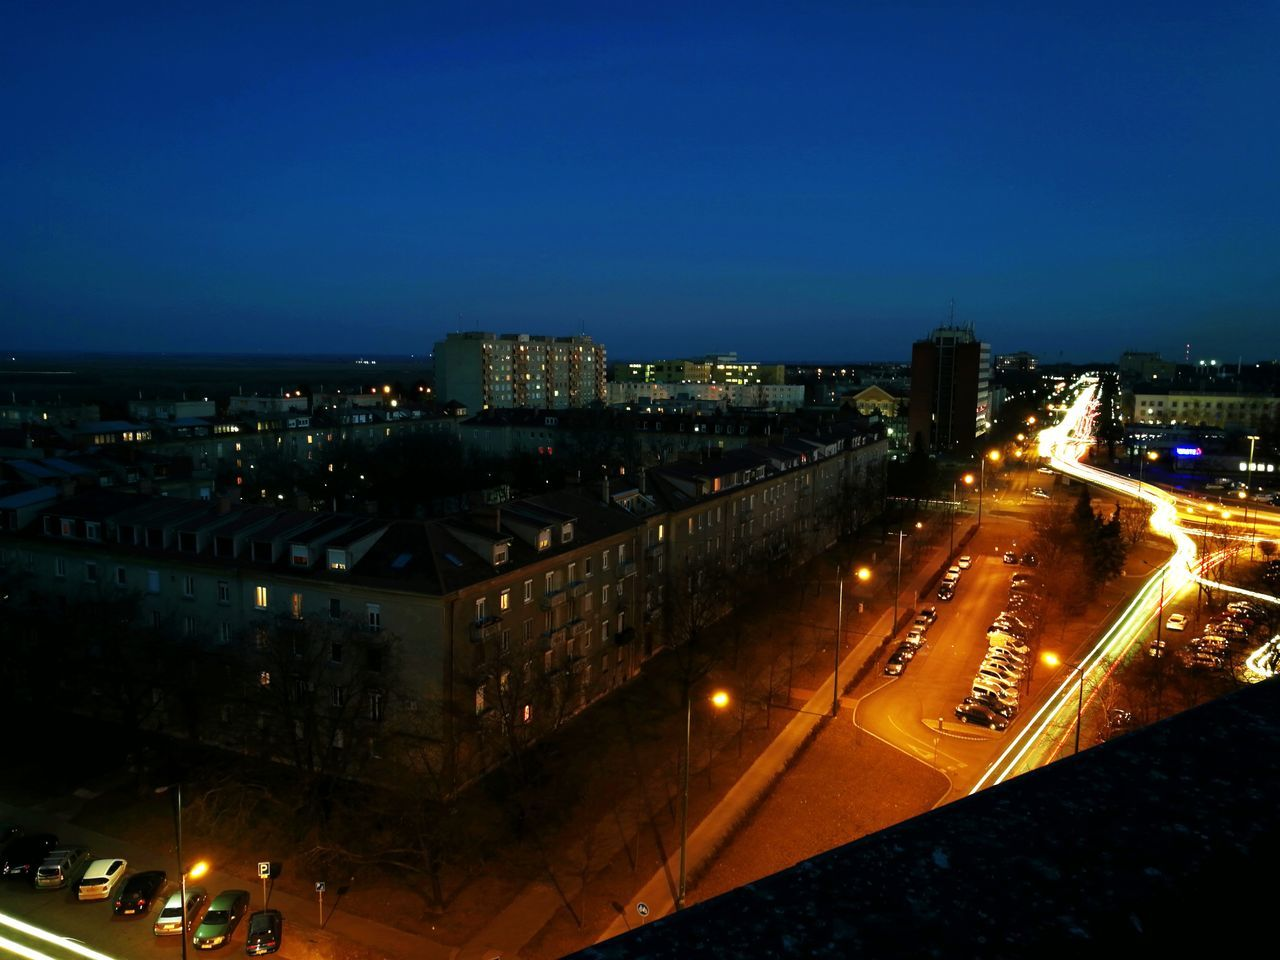 illuminated, architecture, building exterior, city, night, built structure, cityscape, high angle view, transportation, outdoors, city life, road, blue, no people, sky, clear sky, skyscraper, high street